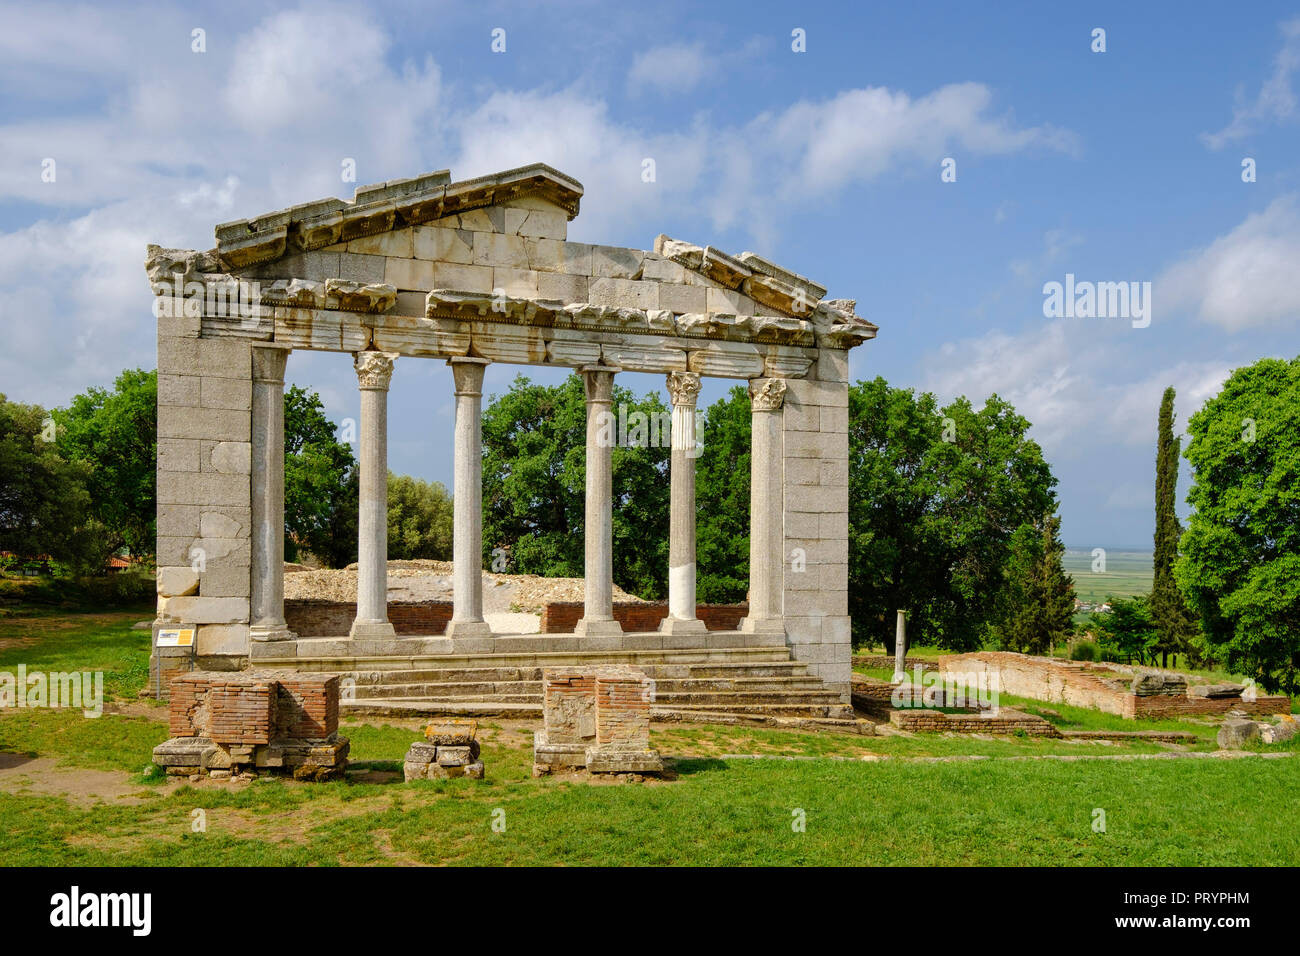 Albania, Fier County, ancient city Apollonia, Portal of Bouleuterion - Stock Image